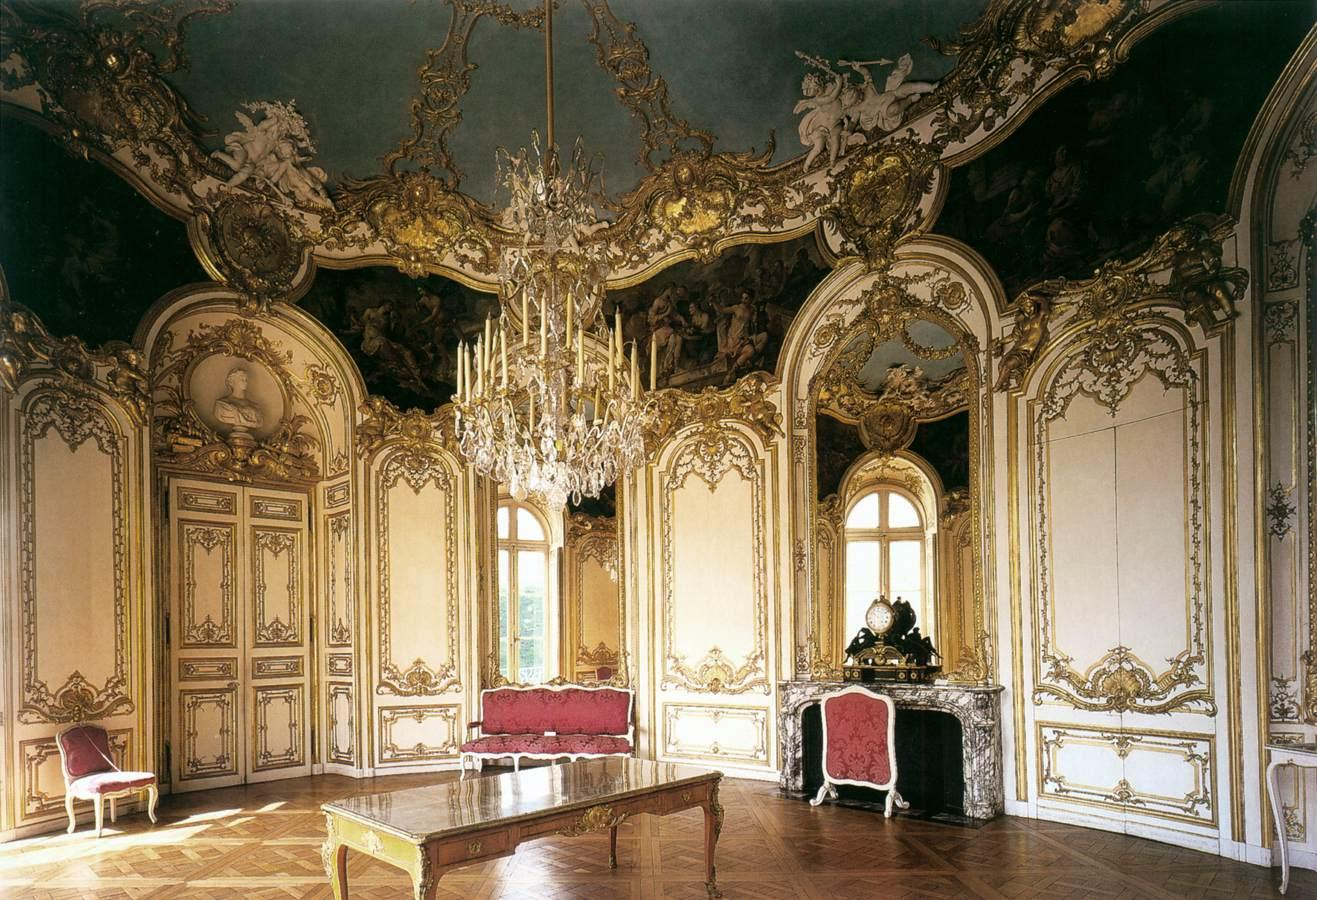 Architectural works (18th century, France)